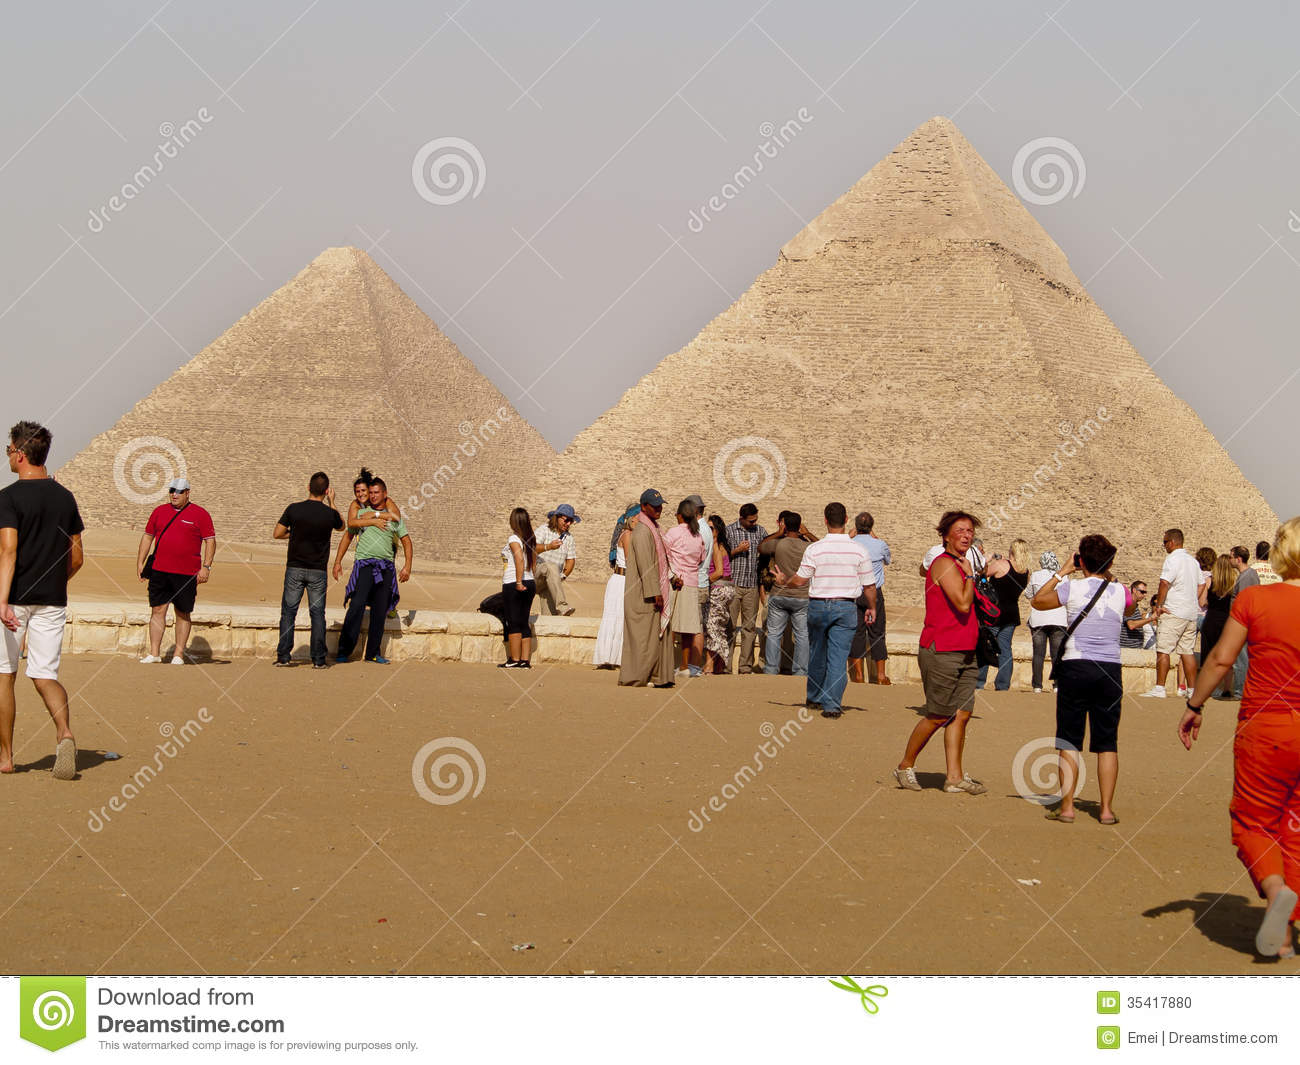 a study of archaeological structures the pyramids of giza egypt Archaeological/historical/heritage research: case study 84: the pyramids of giza and related buildings in the province of giza, egypt.